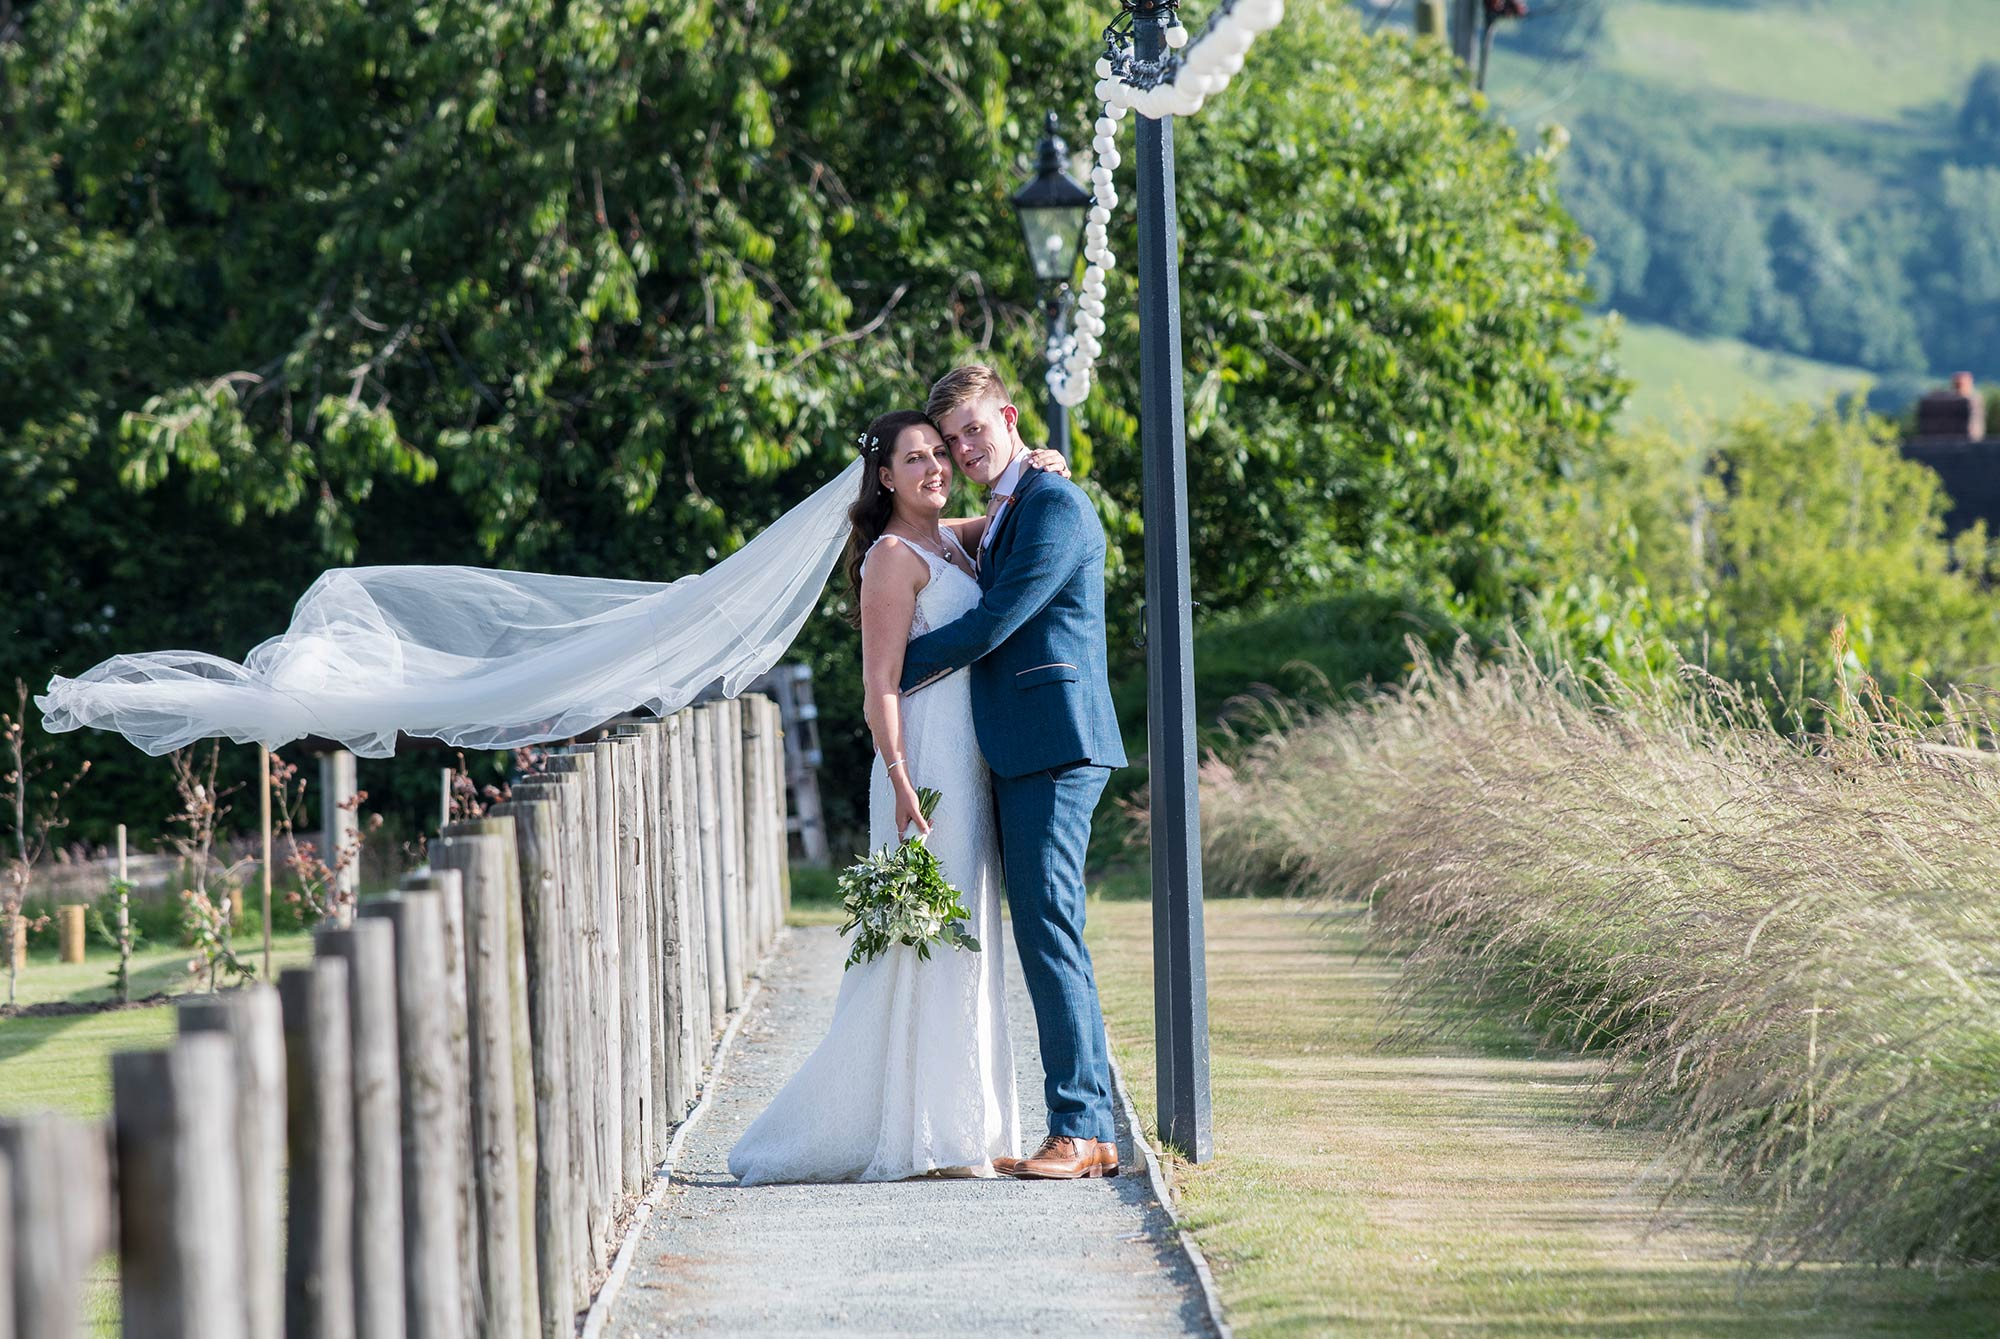 Cheshire newlyweds Claire and John posing for wedding portraits on the grounds of Tower Hill Barns | North Wales